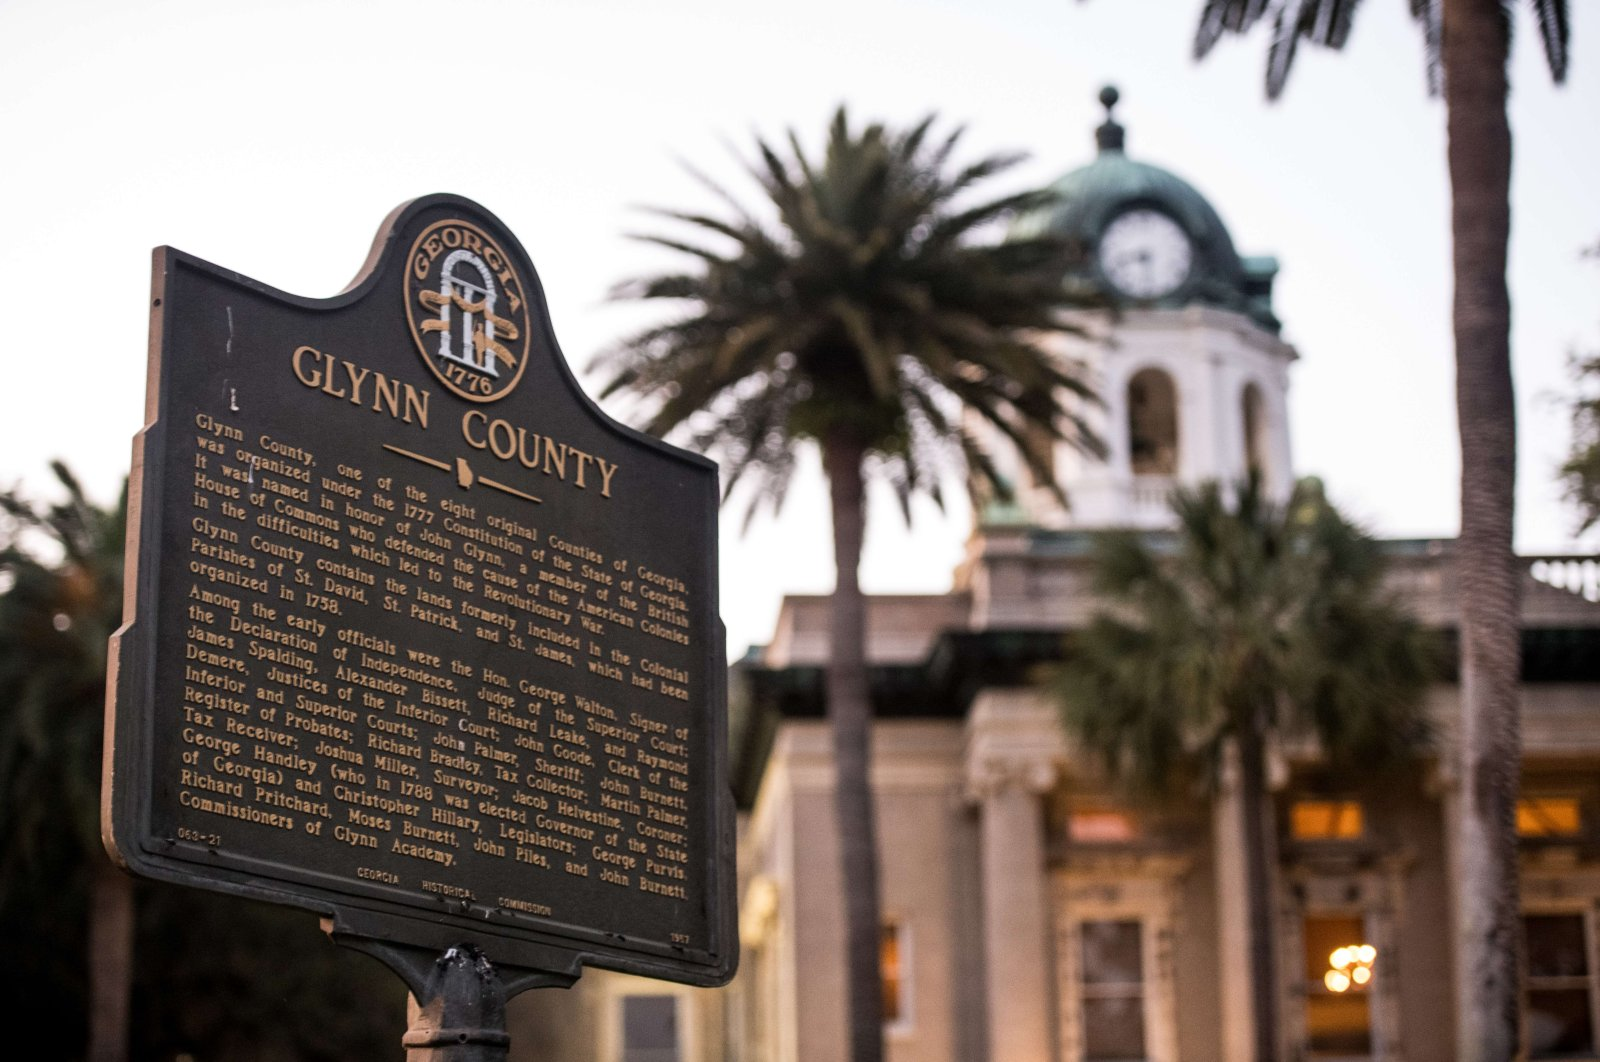 A marker stands in front of the historic Glynn County courthouse in Brunswick, Georgia, May 6, 2020. (AFP Photo)